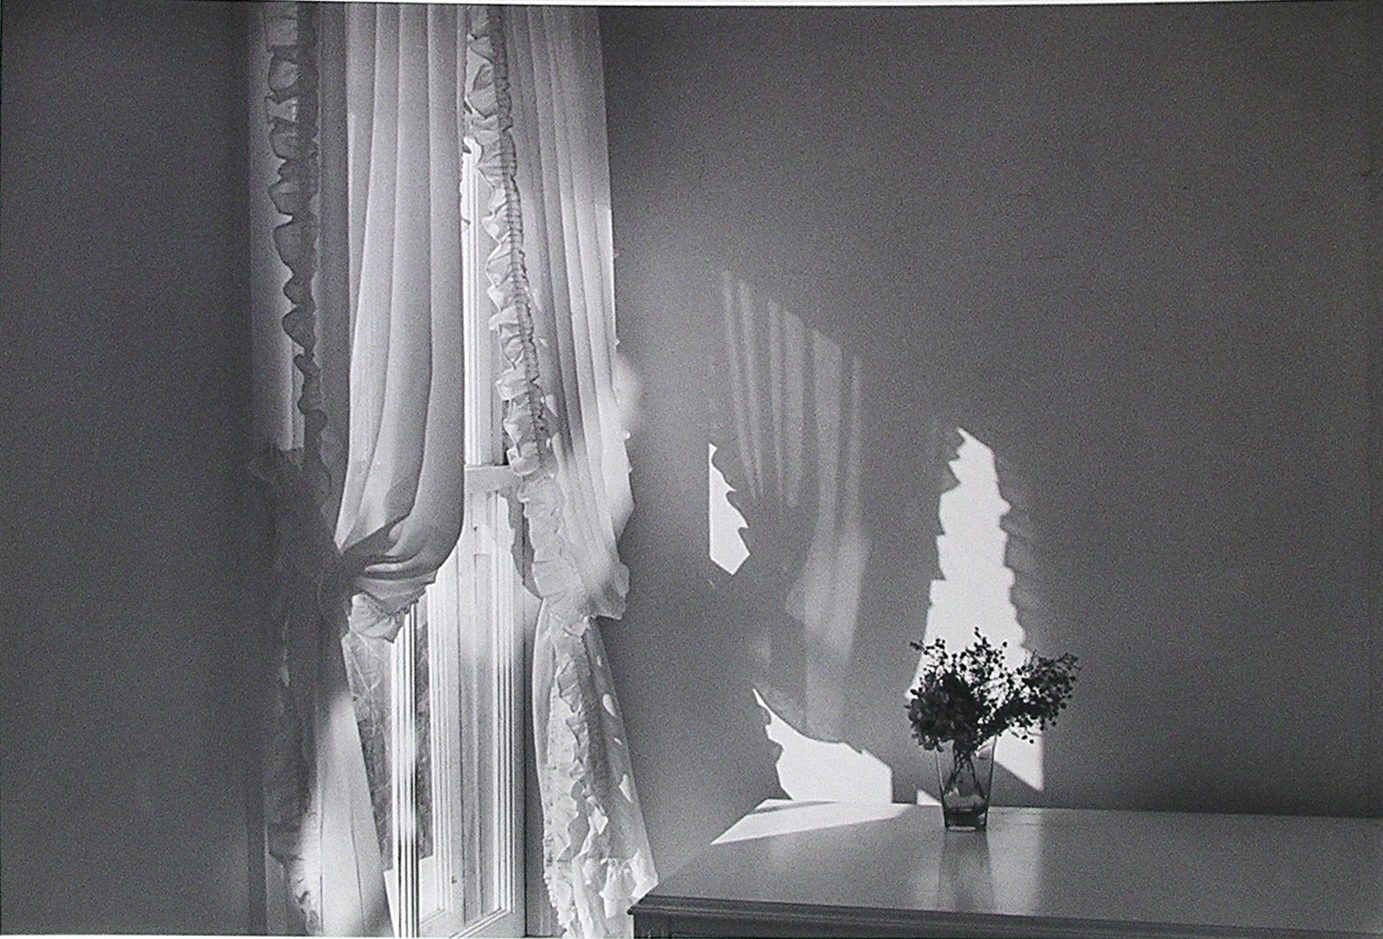 Flower on Table next to Window on Left with Curtain